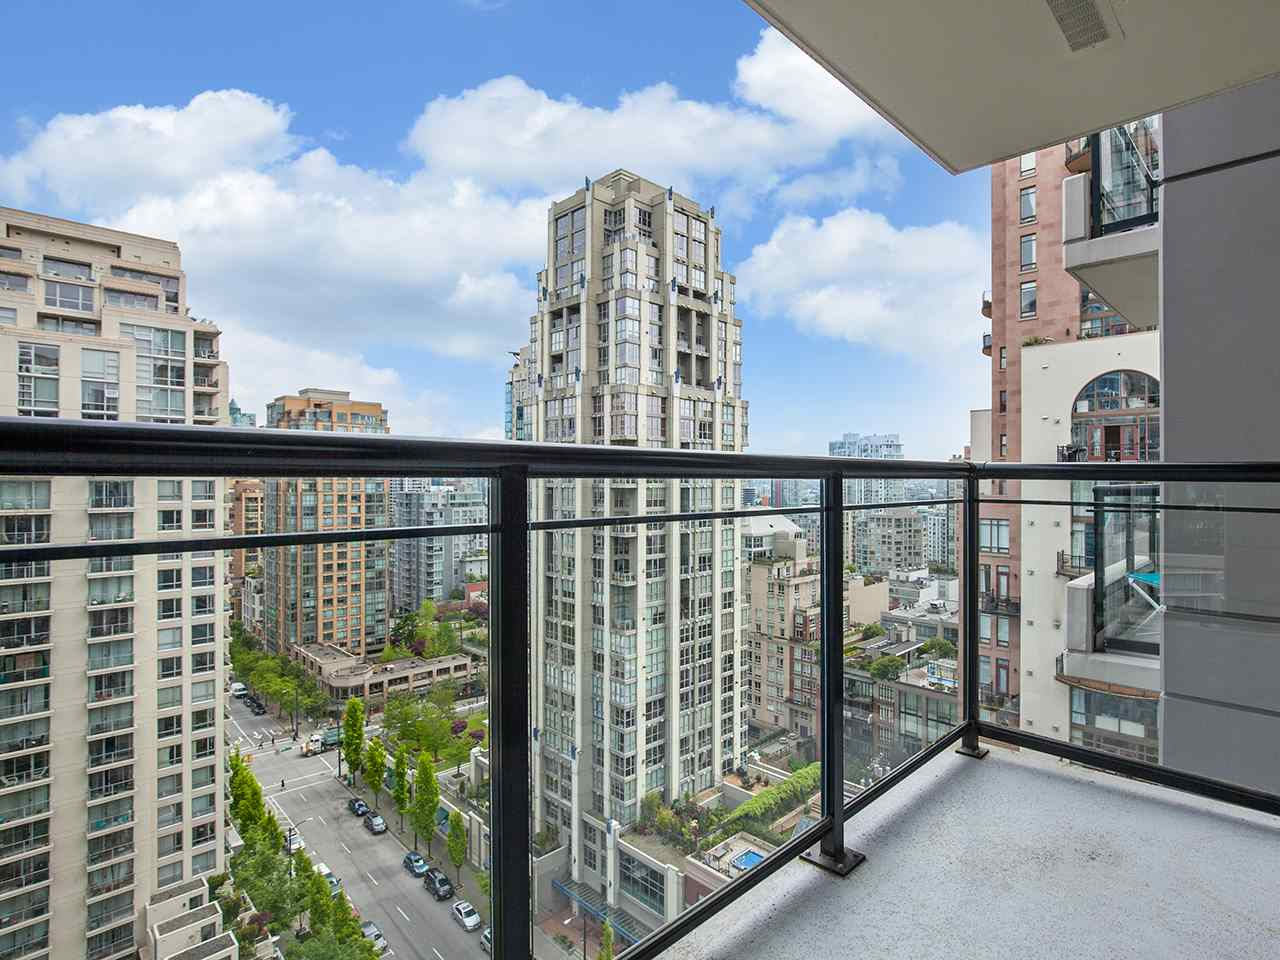 Welcome to The Oscar built by Concert. Located in the heart of Yaletown this bright and well laid out 1 bedroom has an open kitchen with breakfast bar and insuite storage; perfect for a pantry. Sit on your spacious north-east facing balcony and take in gorgous city and peek-a-boo water views or stroll down to the seawall or David Lam Park, restaurants, shopping and everything else Yaletown has to offer. Take advantage of fantastic amenities incl. gym, party room, common patio with dog run & movie theatre in this well sought after building. Bonus: Parking, rentals & pets allowed. ***OPEN HOUSE, THURSDAY MAY 25, 5:30-7PM, SAT & SUN MAY 27 &28, 2-4PM